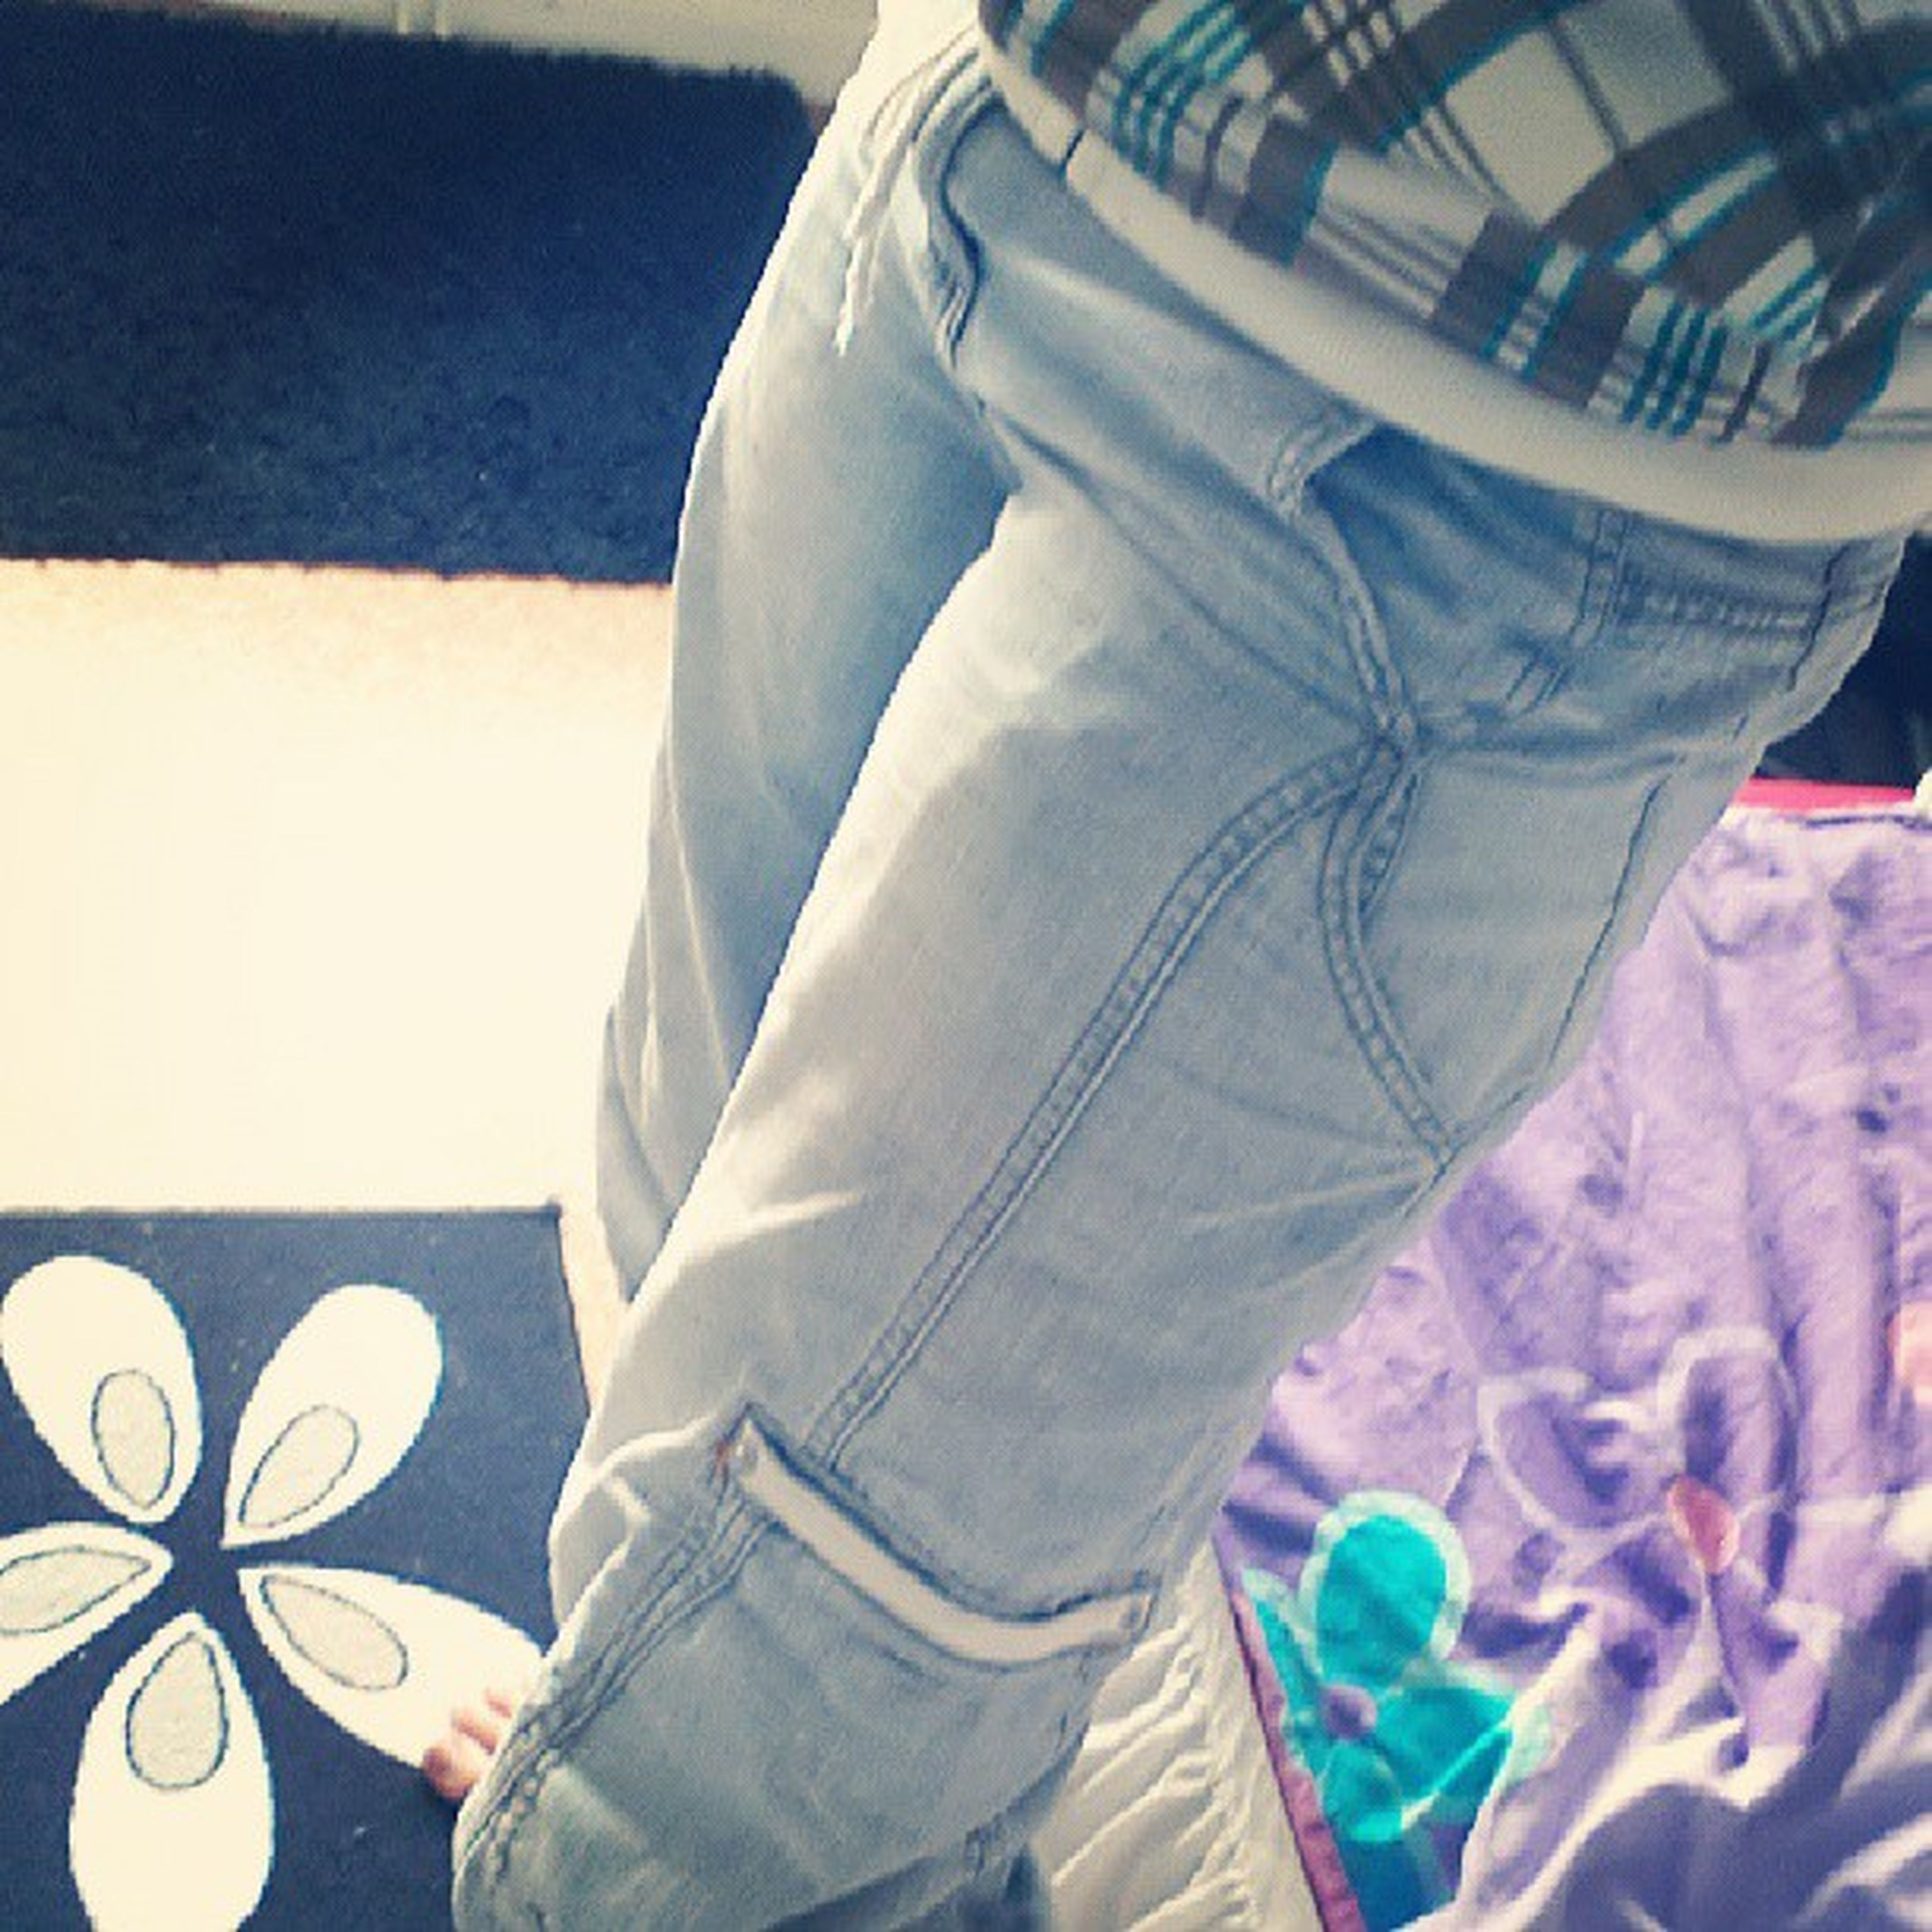 indoors, blue, jeans, low section, casual clothing, person, lifestyles, warm clothing, standing, men, shoe, leisure activity, white color, fabric, bed, rear view, textile